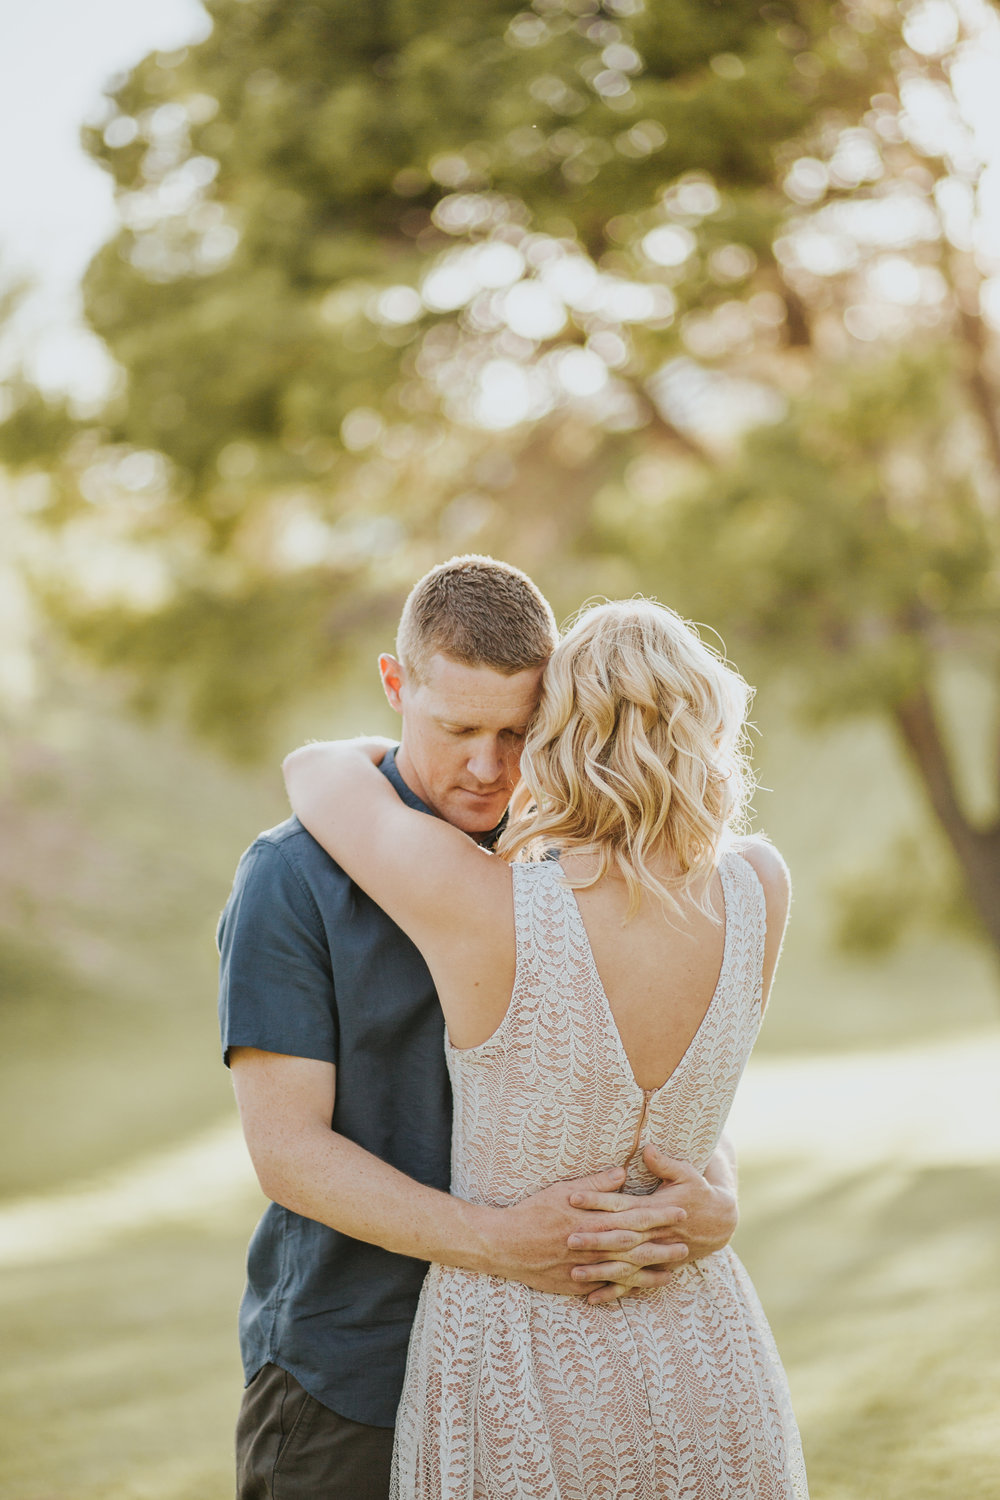 el-paso-memorial-park-engagement-sparrow-and-gold-photography-17